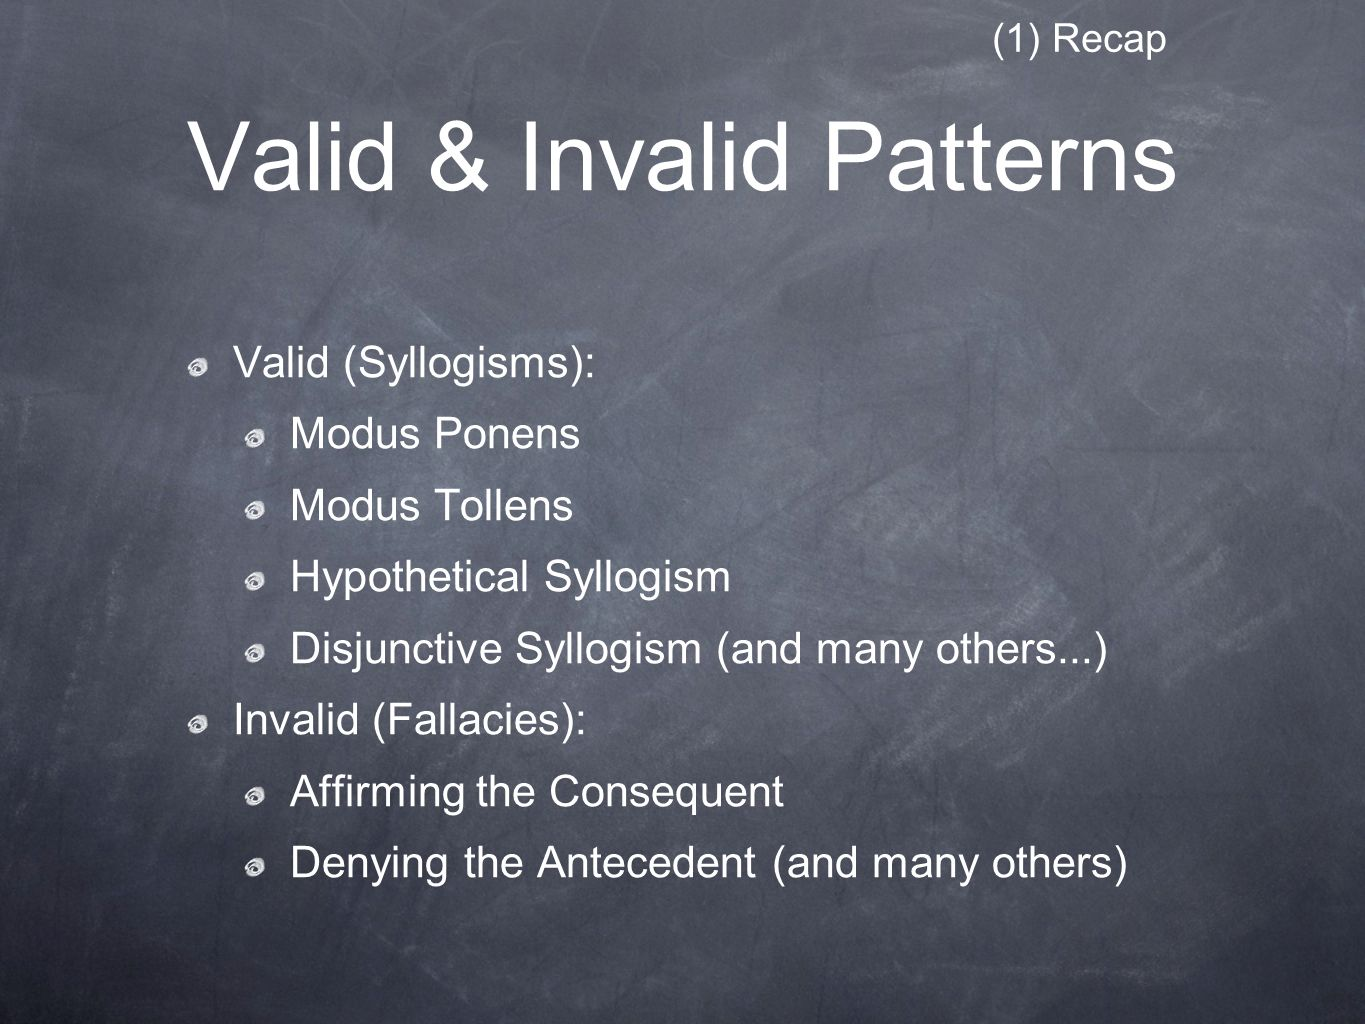 Valid & Invalid Patterns Valid (Syllogisms): Modus Ponens Modus Tollens Hypothetical Syllogism Disjunctive Syllogism (and many others...) Invalid (Fallacies): Affirming the Consequent Denying the Antecedent (and many others) (1) Recap